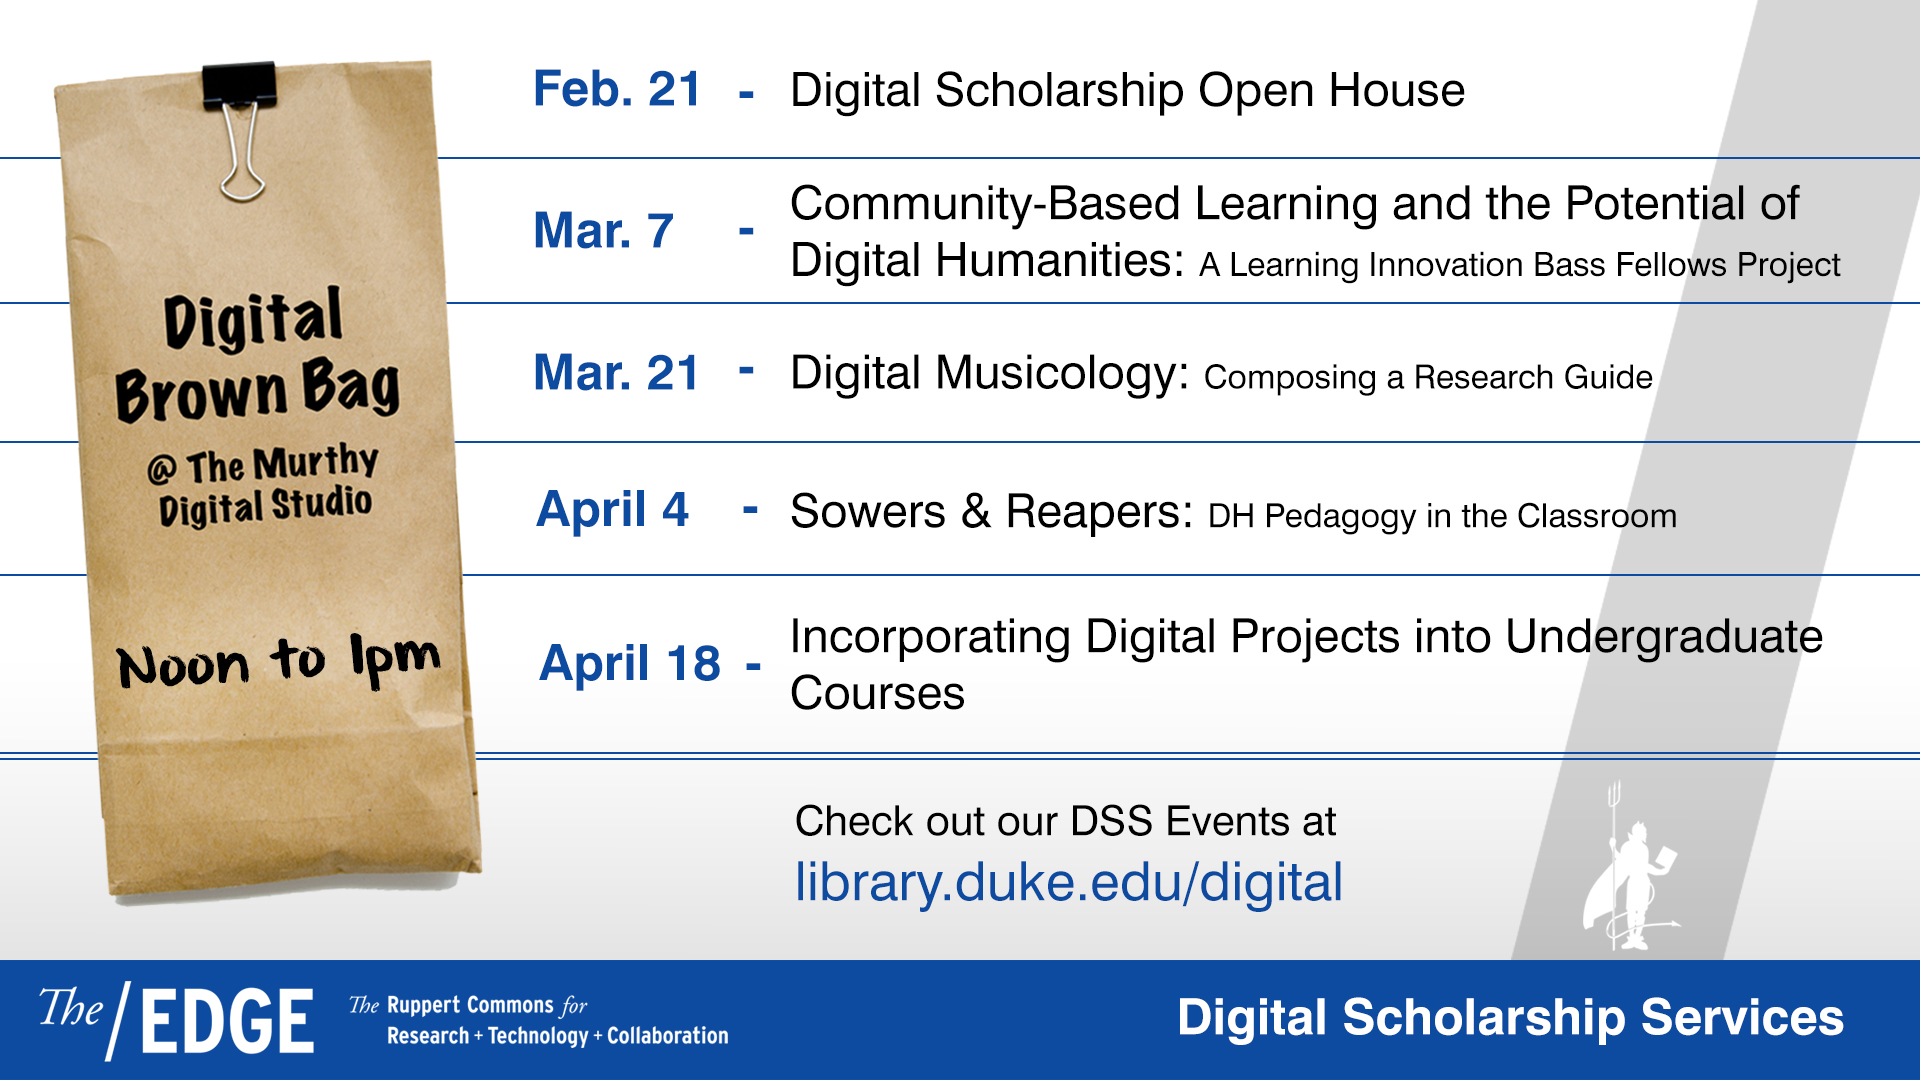 Digital Brown Bag: Community-Based Learning and the Potential of Digital Humanities: A Learning Innovation Bass Fellows Project